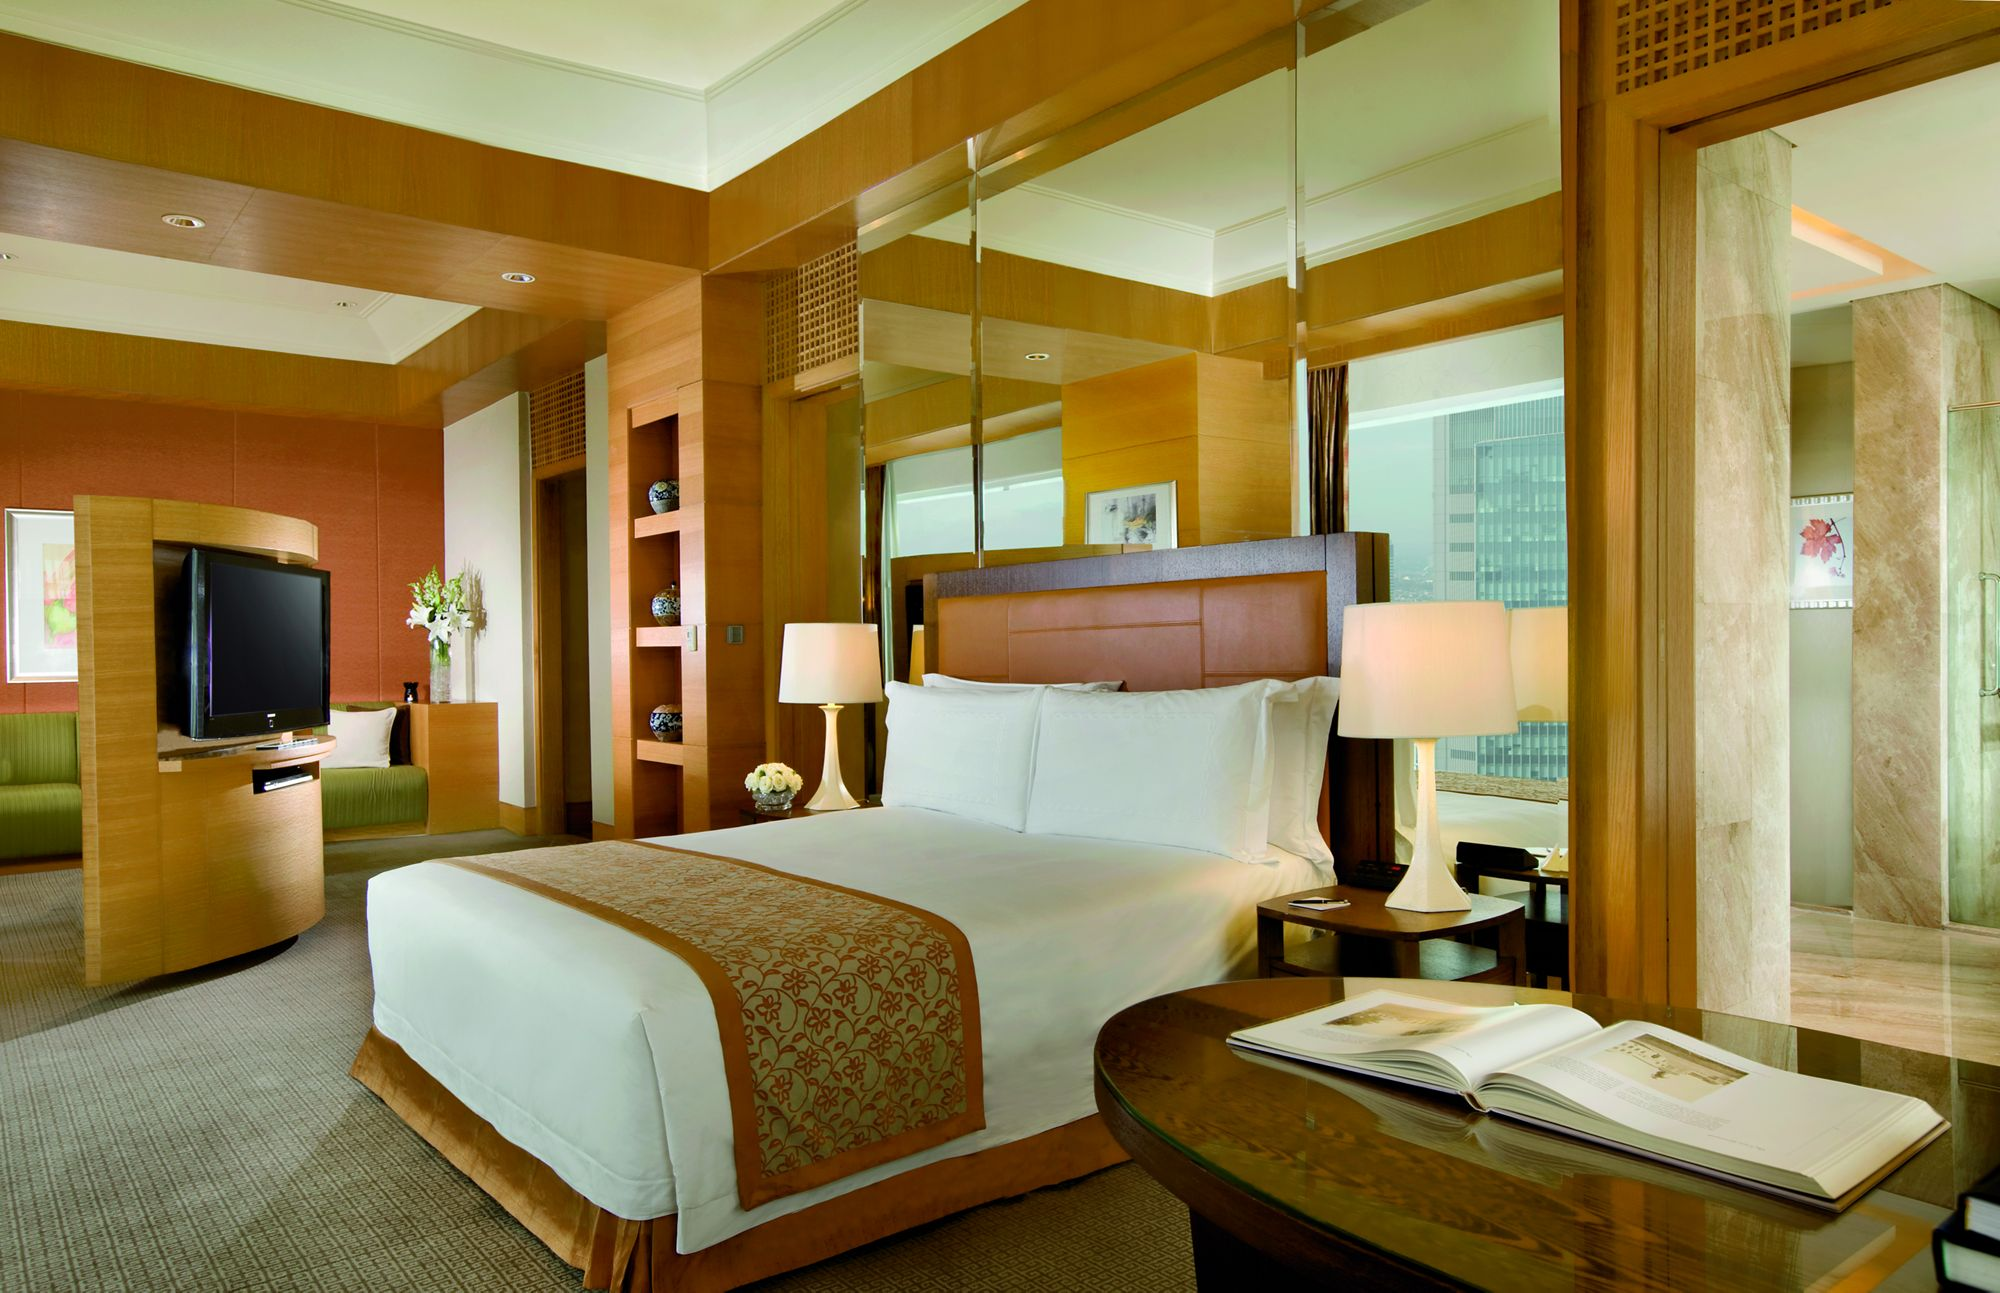 Room with a king bed, an oval wood table with an open book on top, and a wood-paneled shelf with a flat-screen TV